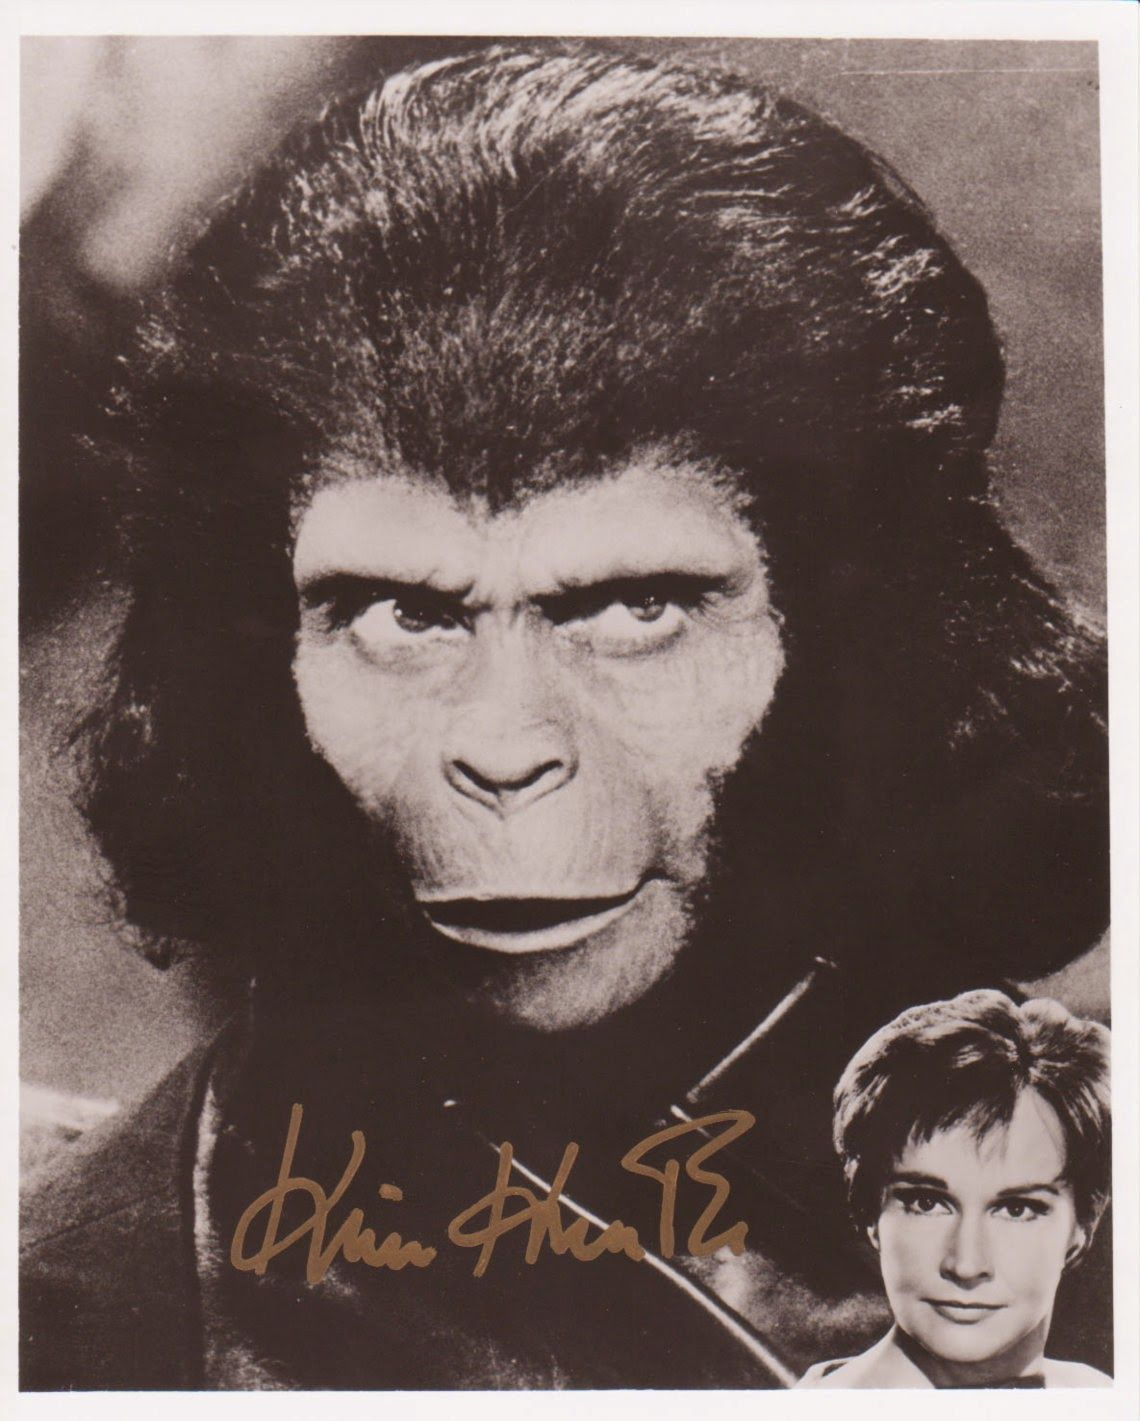 Archives Of The Apes: Autographs Of The Apes